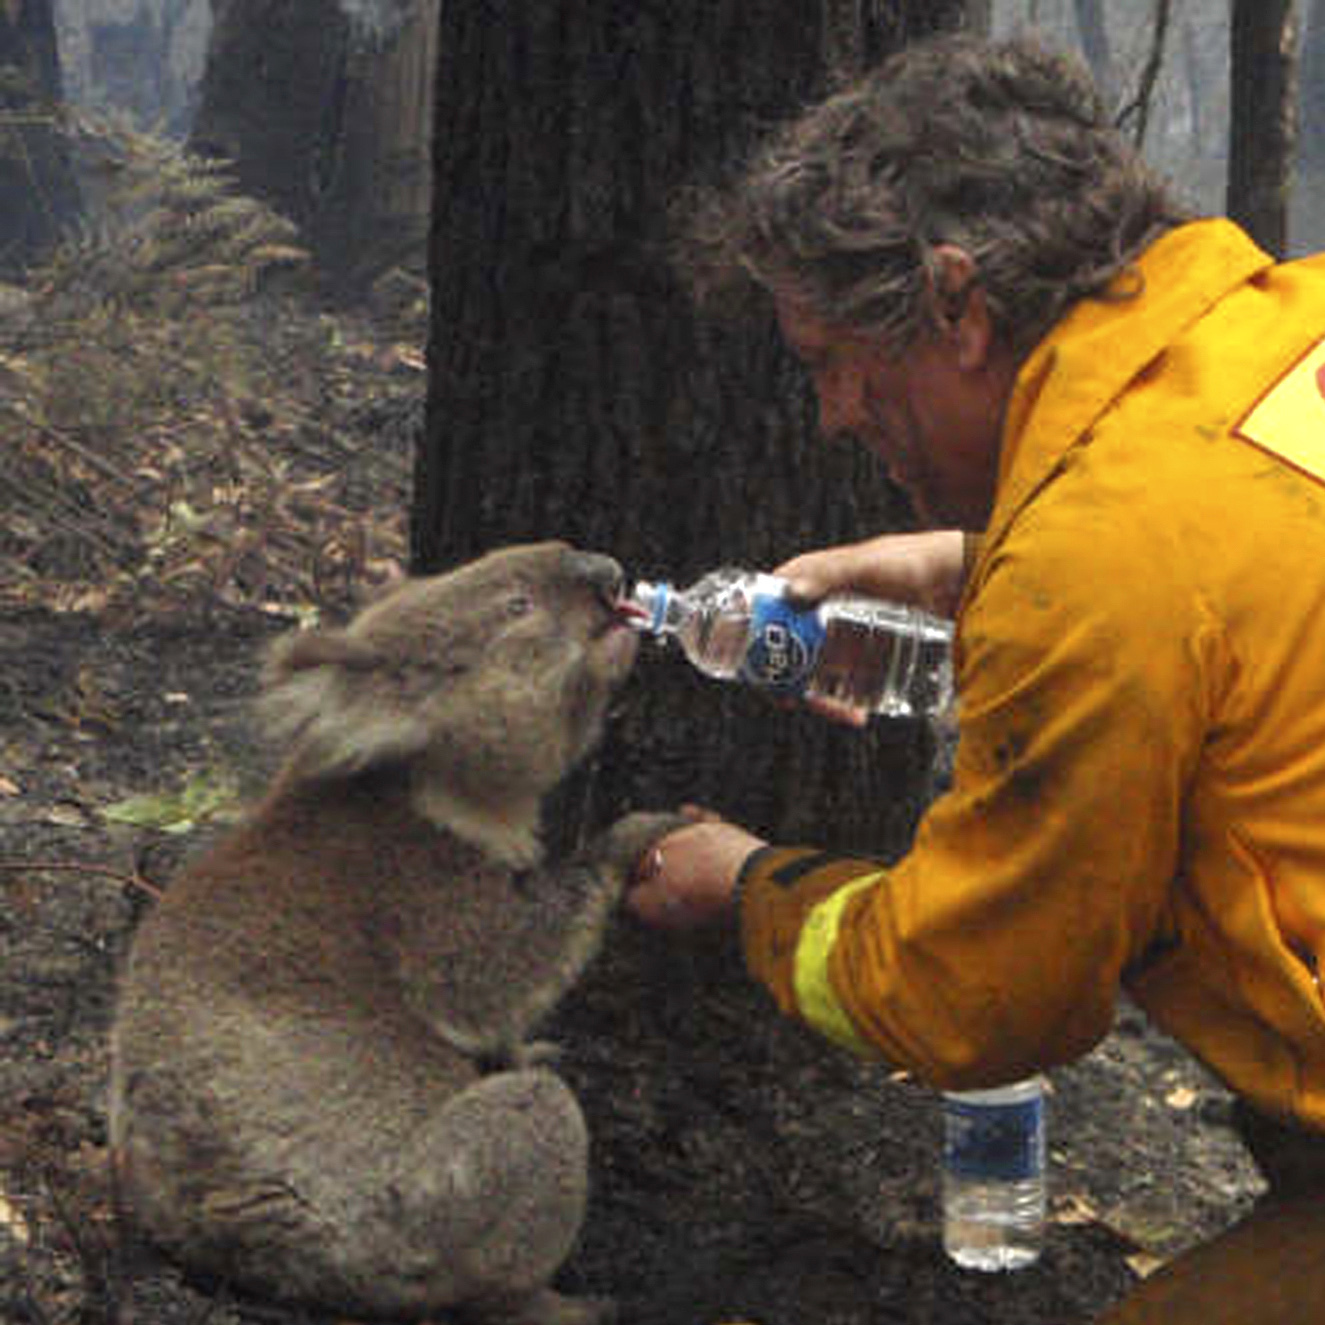 "When wildfires swept across Australia in February 2009, this photo of a firefighter sharing his water with an injured koala captured hearts around the world. The koala later died -- not of fire-related injuries, but of chlamydia. Koalas in Australia are suffering from an epidemic of chlamydia, says Dr. Barbara Natterson-Horowitz. ""There's no such thing as safe sex in the wild."""